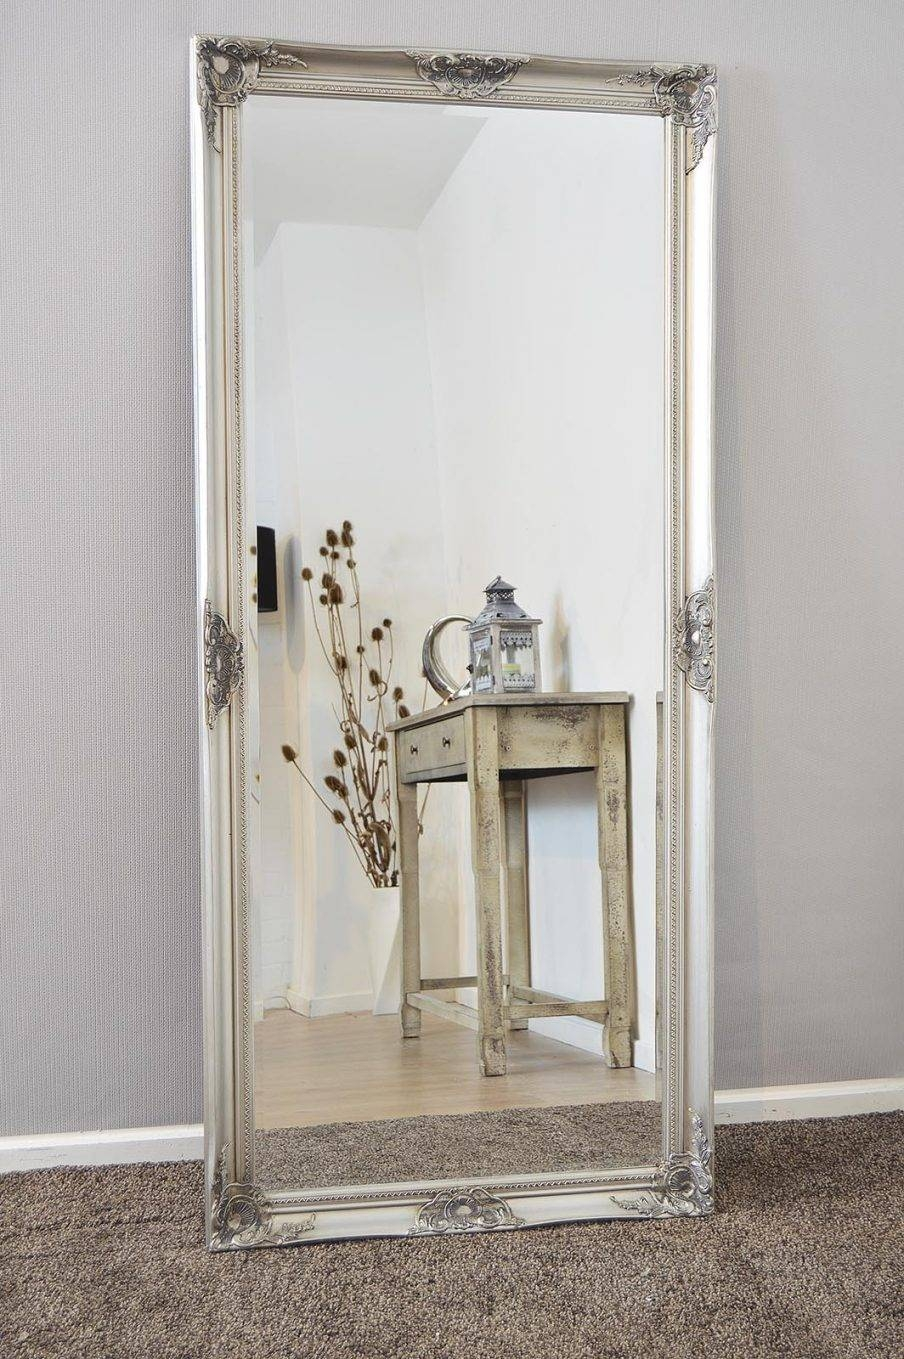 Wall Decor: Shabby Chic Wall Mirror Design. Shabby Chic Bathroom within Shabby Chic Mirrors With Shelf (Image 15 of 15)